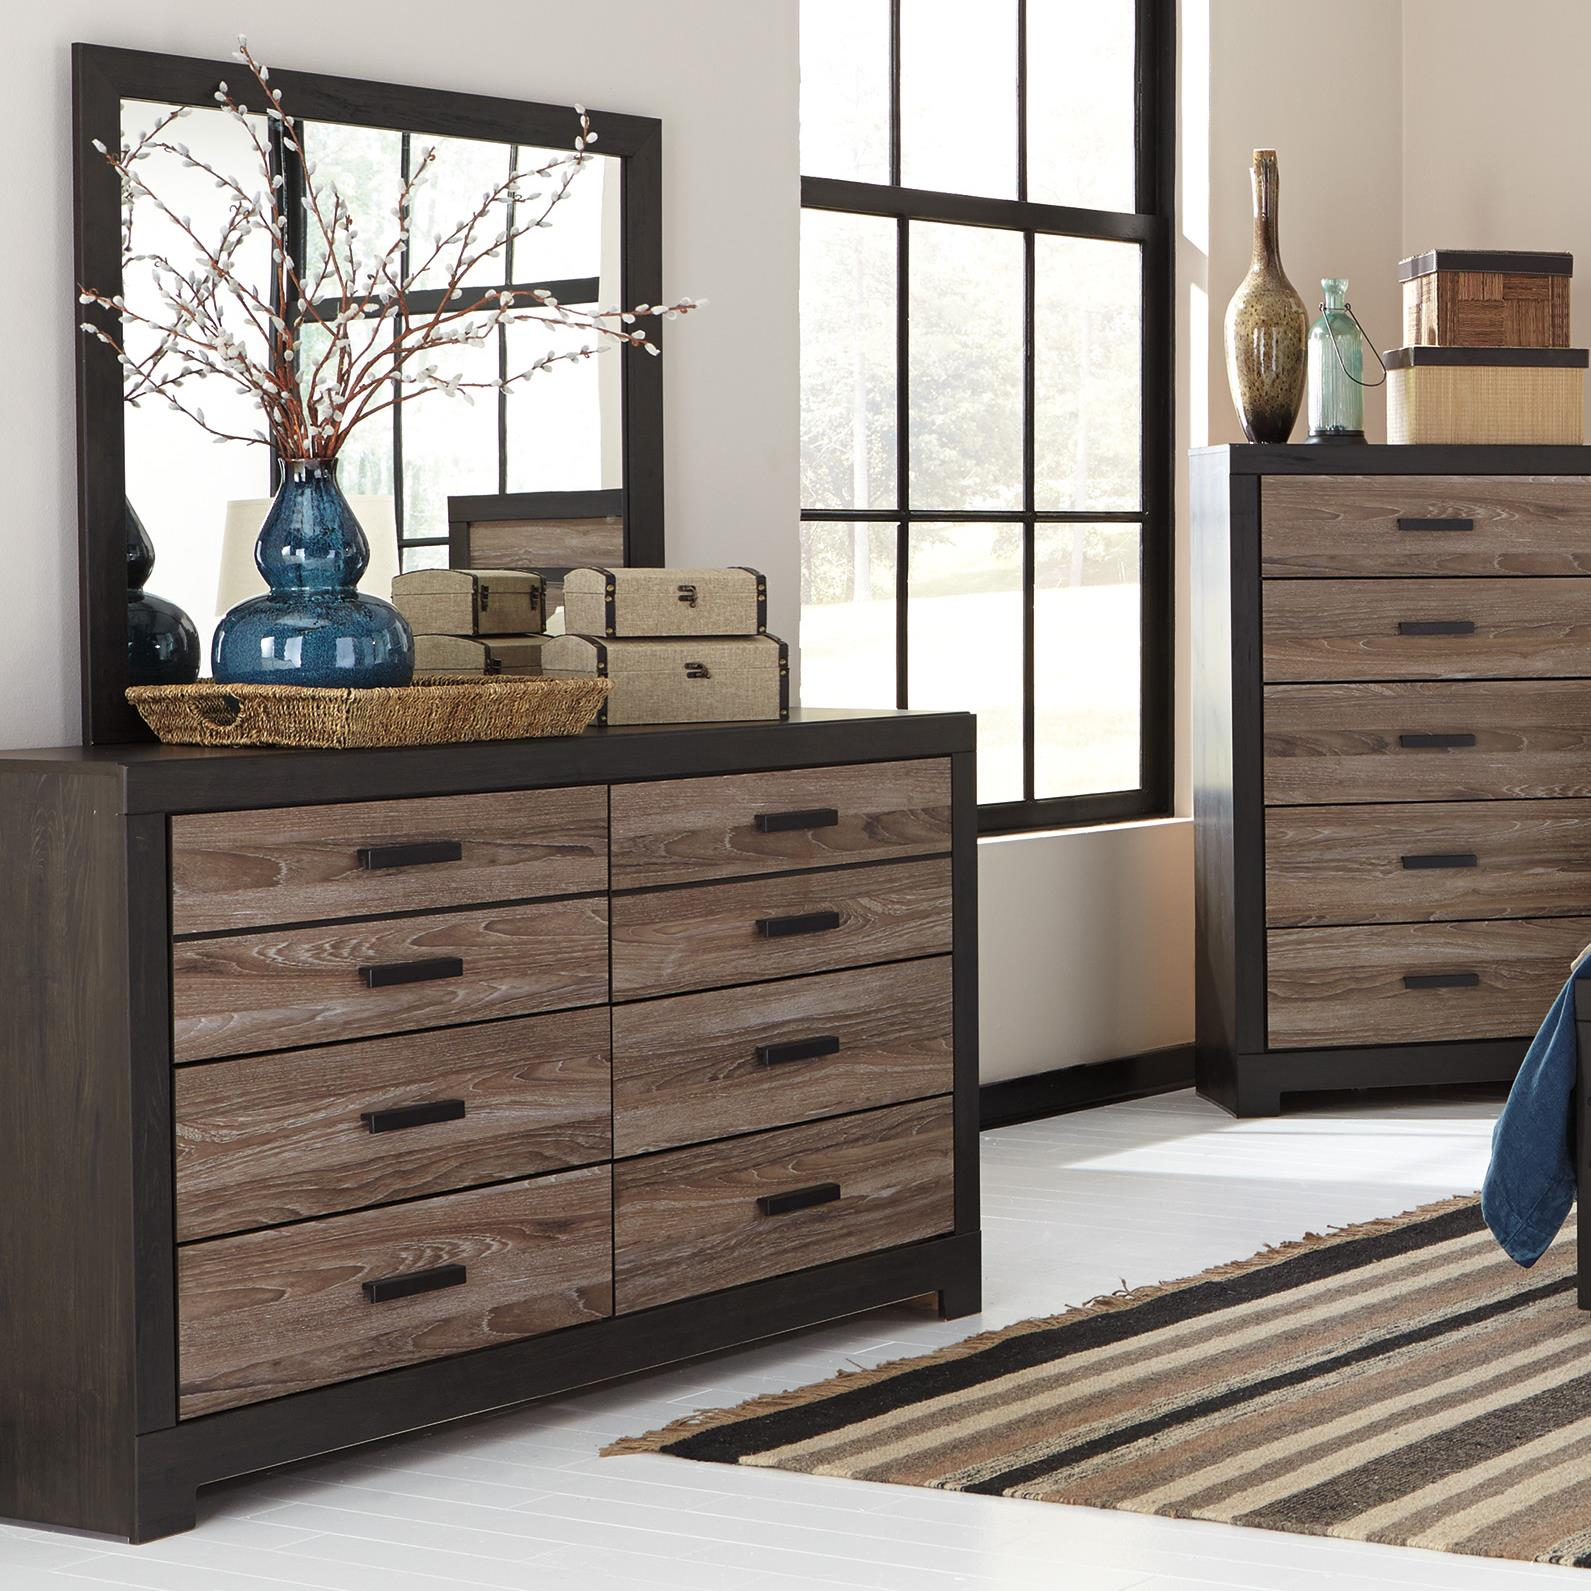 Black Bedroom Suite Harlinton Rustic Two Tone Dresser Bedroom Mirror By Signature Design By Ashley At Wayside Furniture